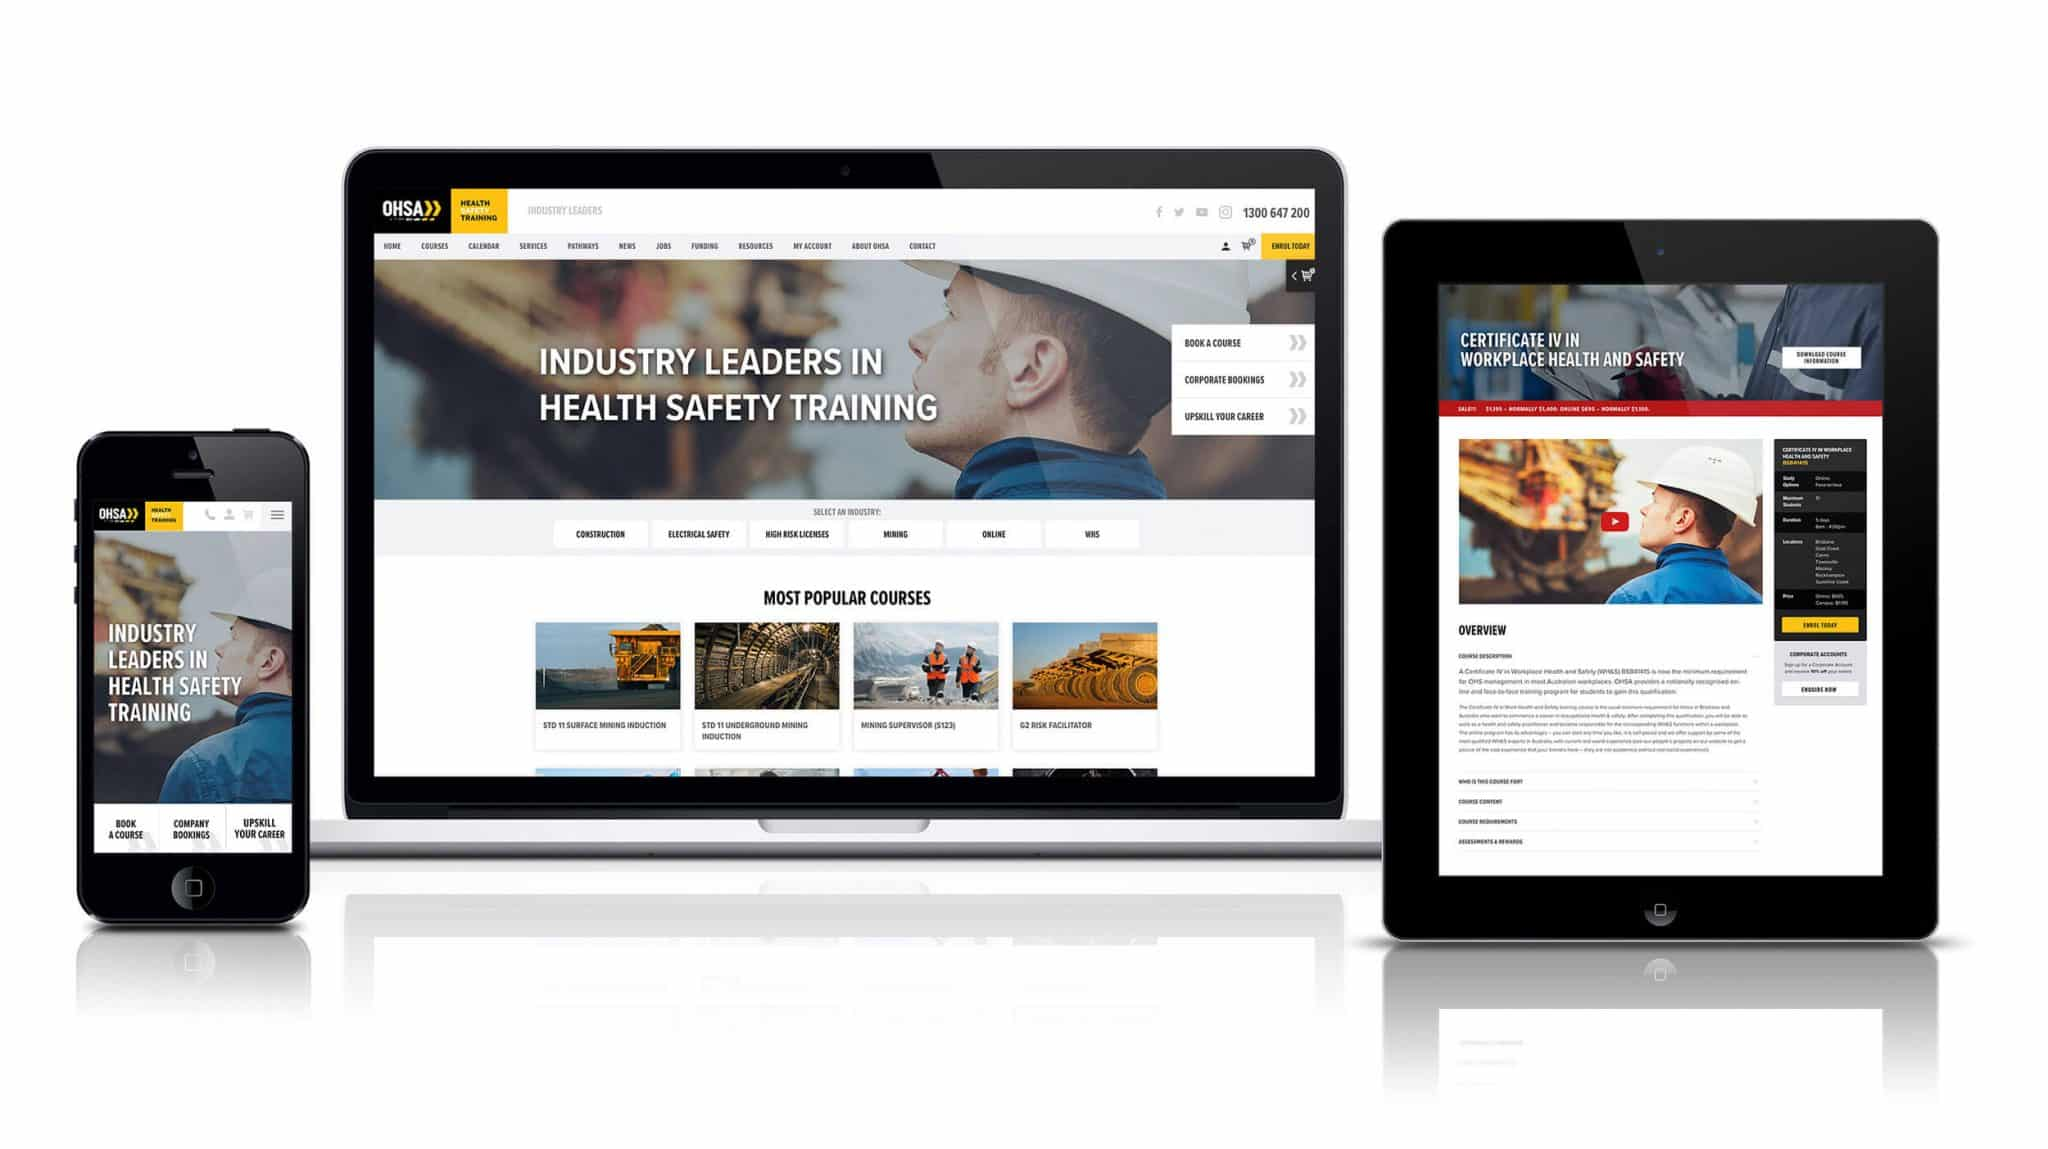 OHSA Website Design and Development